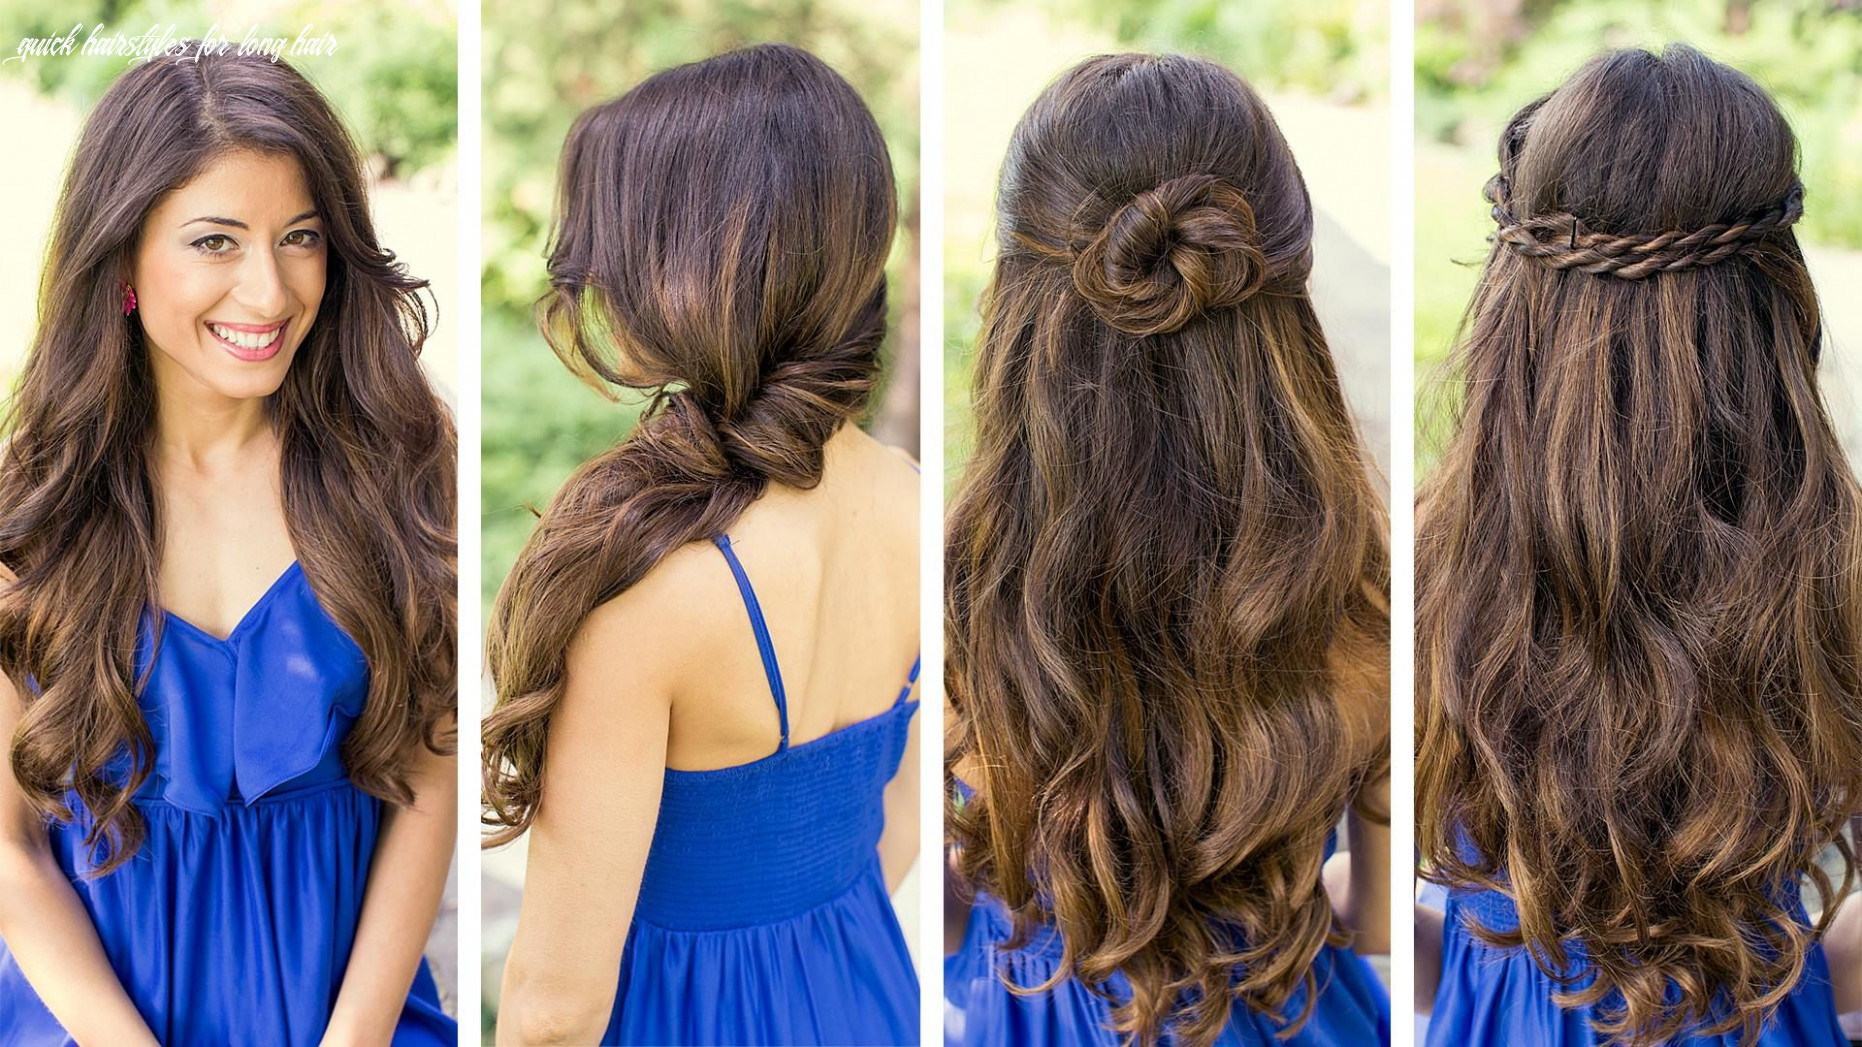 Cute hairstyles, cute and easy hairstyles, long hair hairstyles